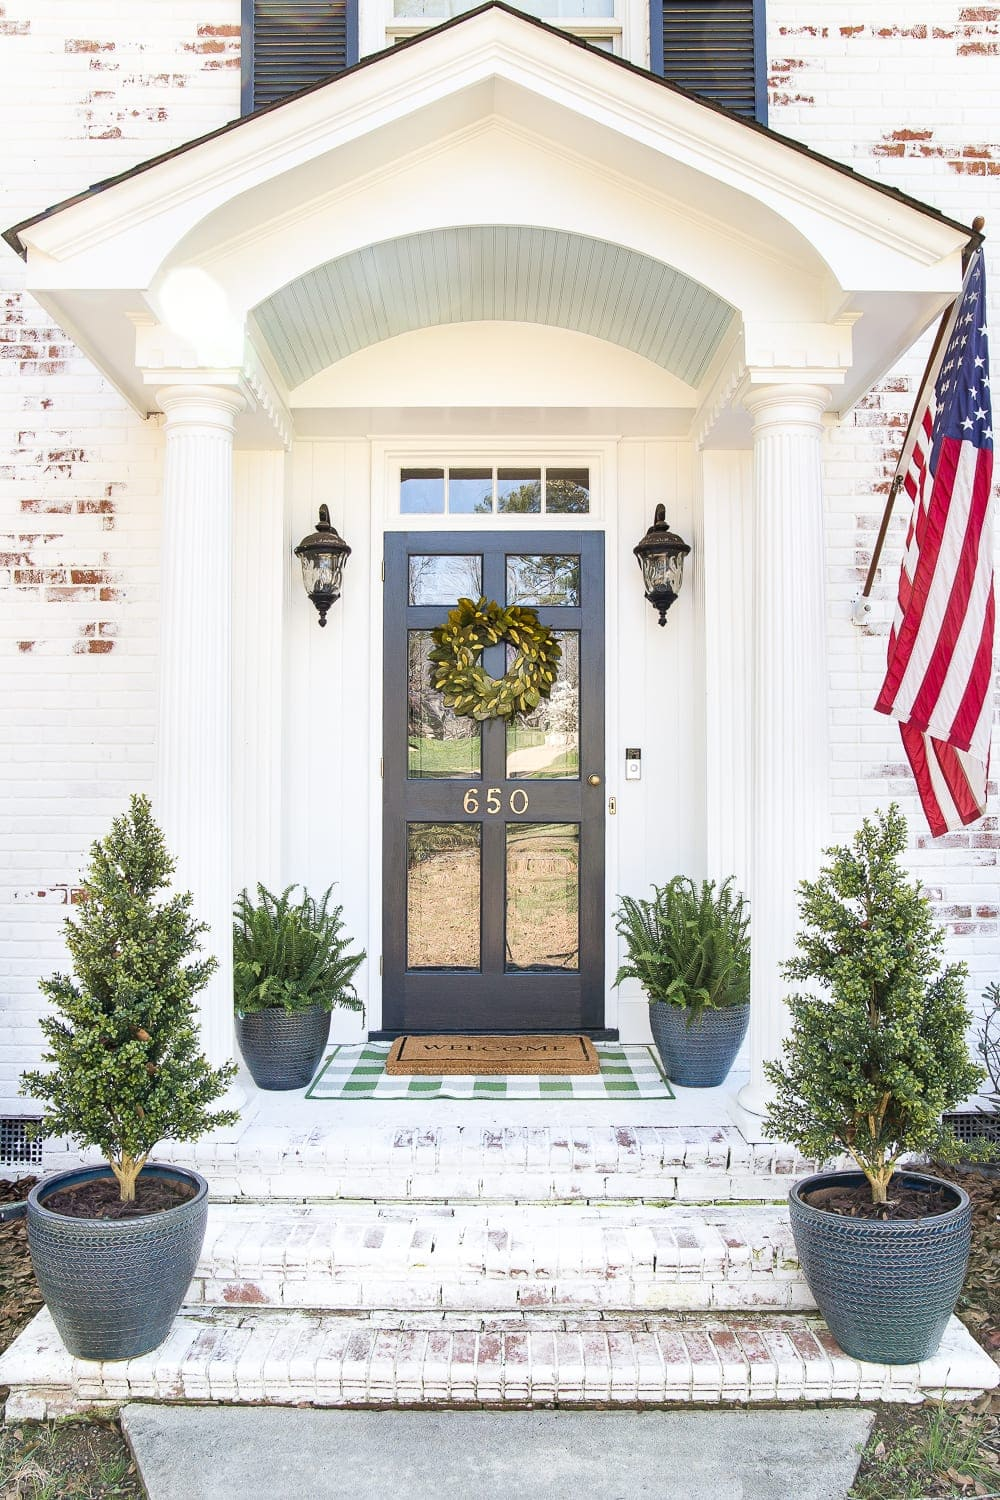 How to Decorate a Small Porch Stoop in 4 Easy Steps - Bless\'er House